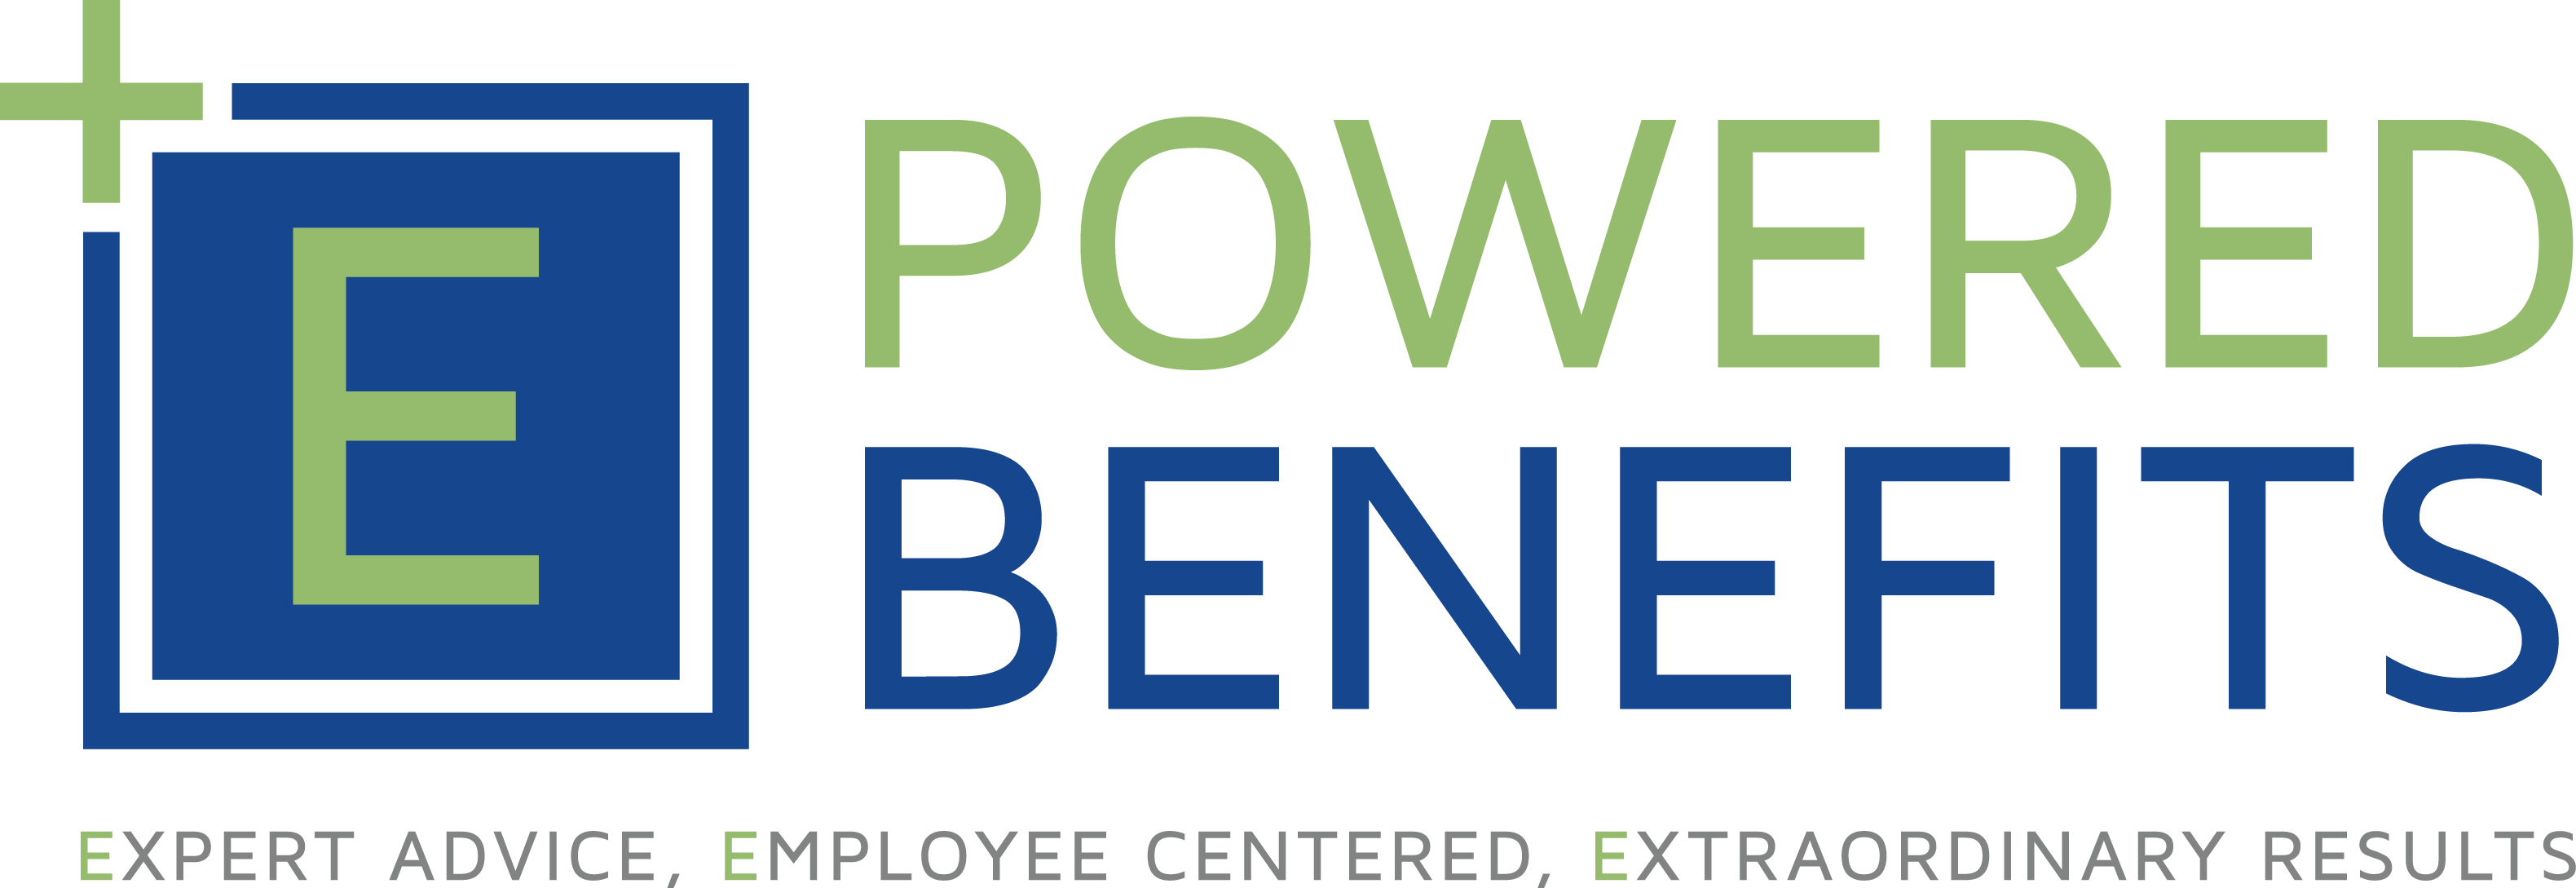 E Powered Benefits